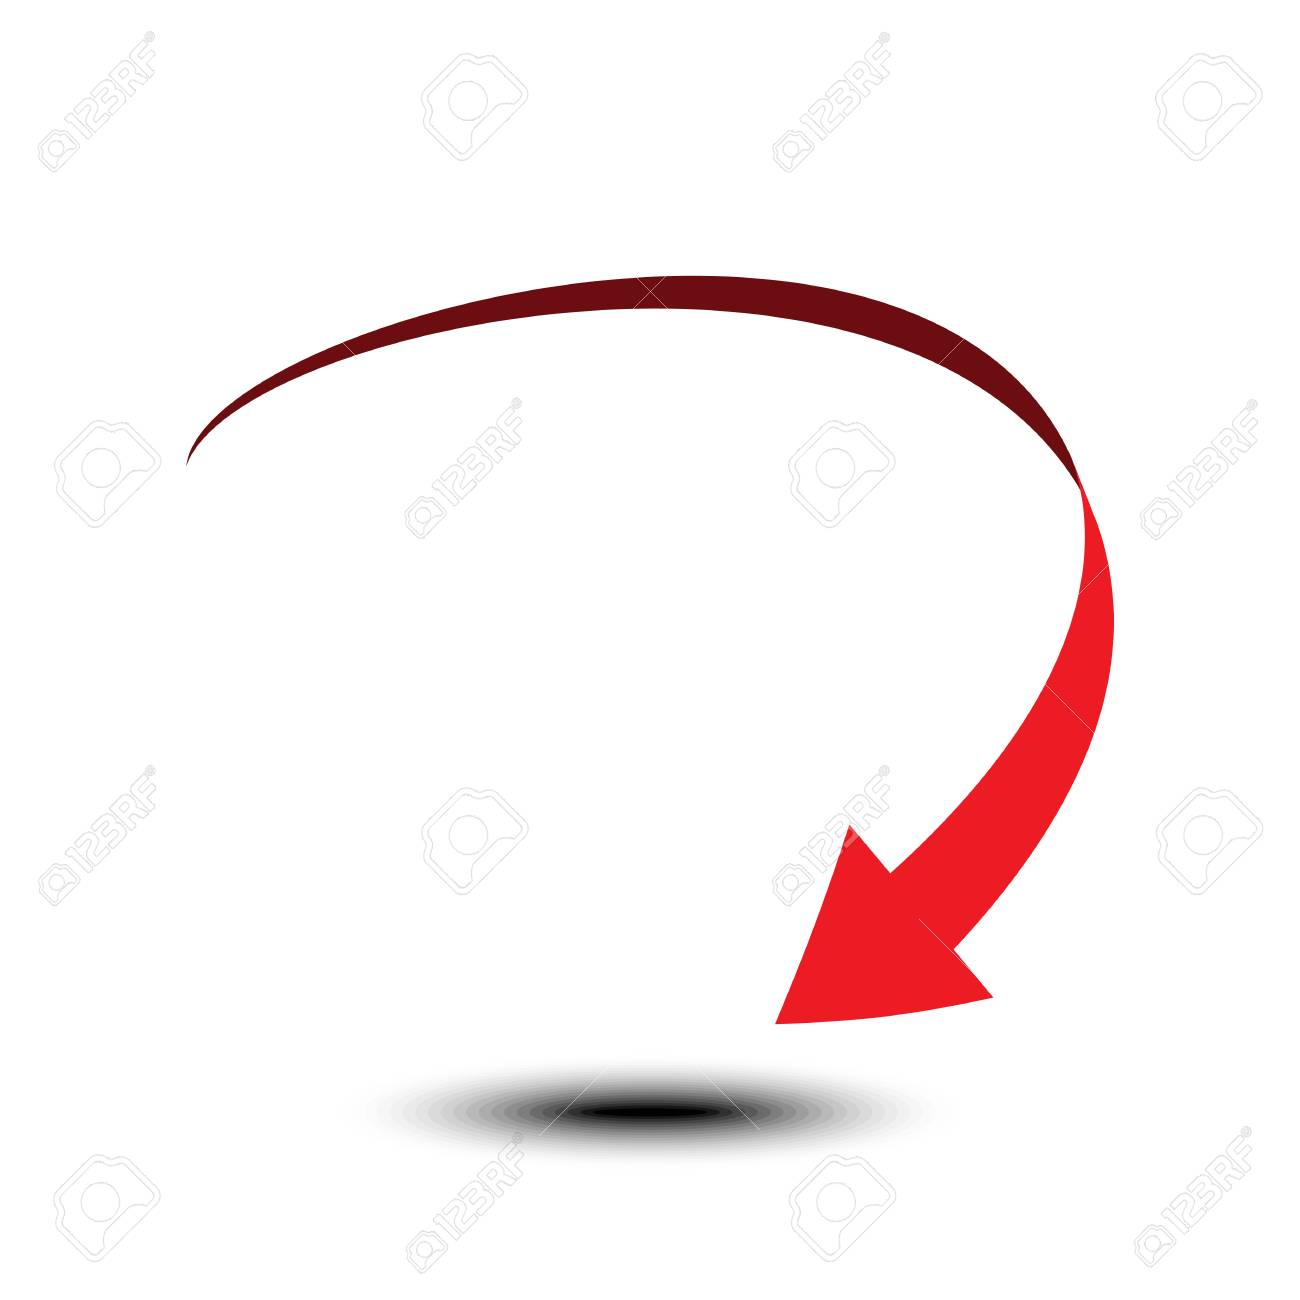 Curved Arrow Icon Isolated On White Background Vector Illustration